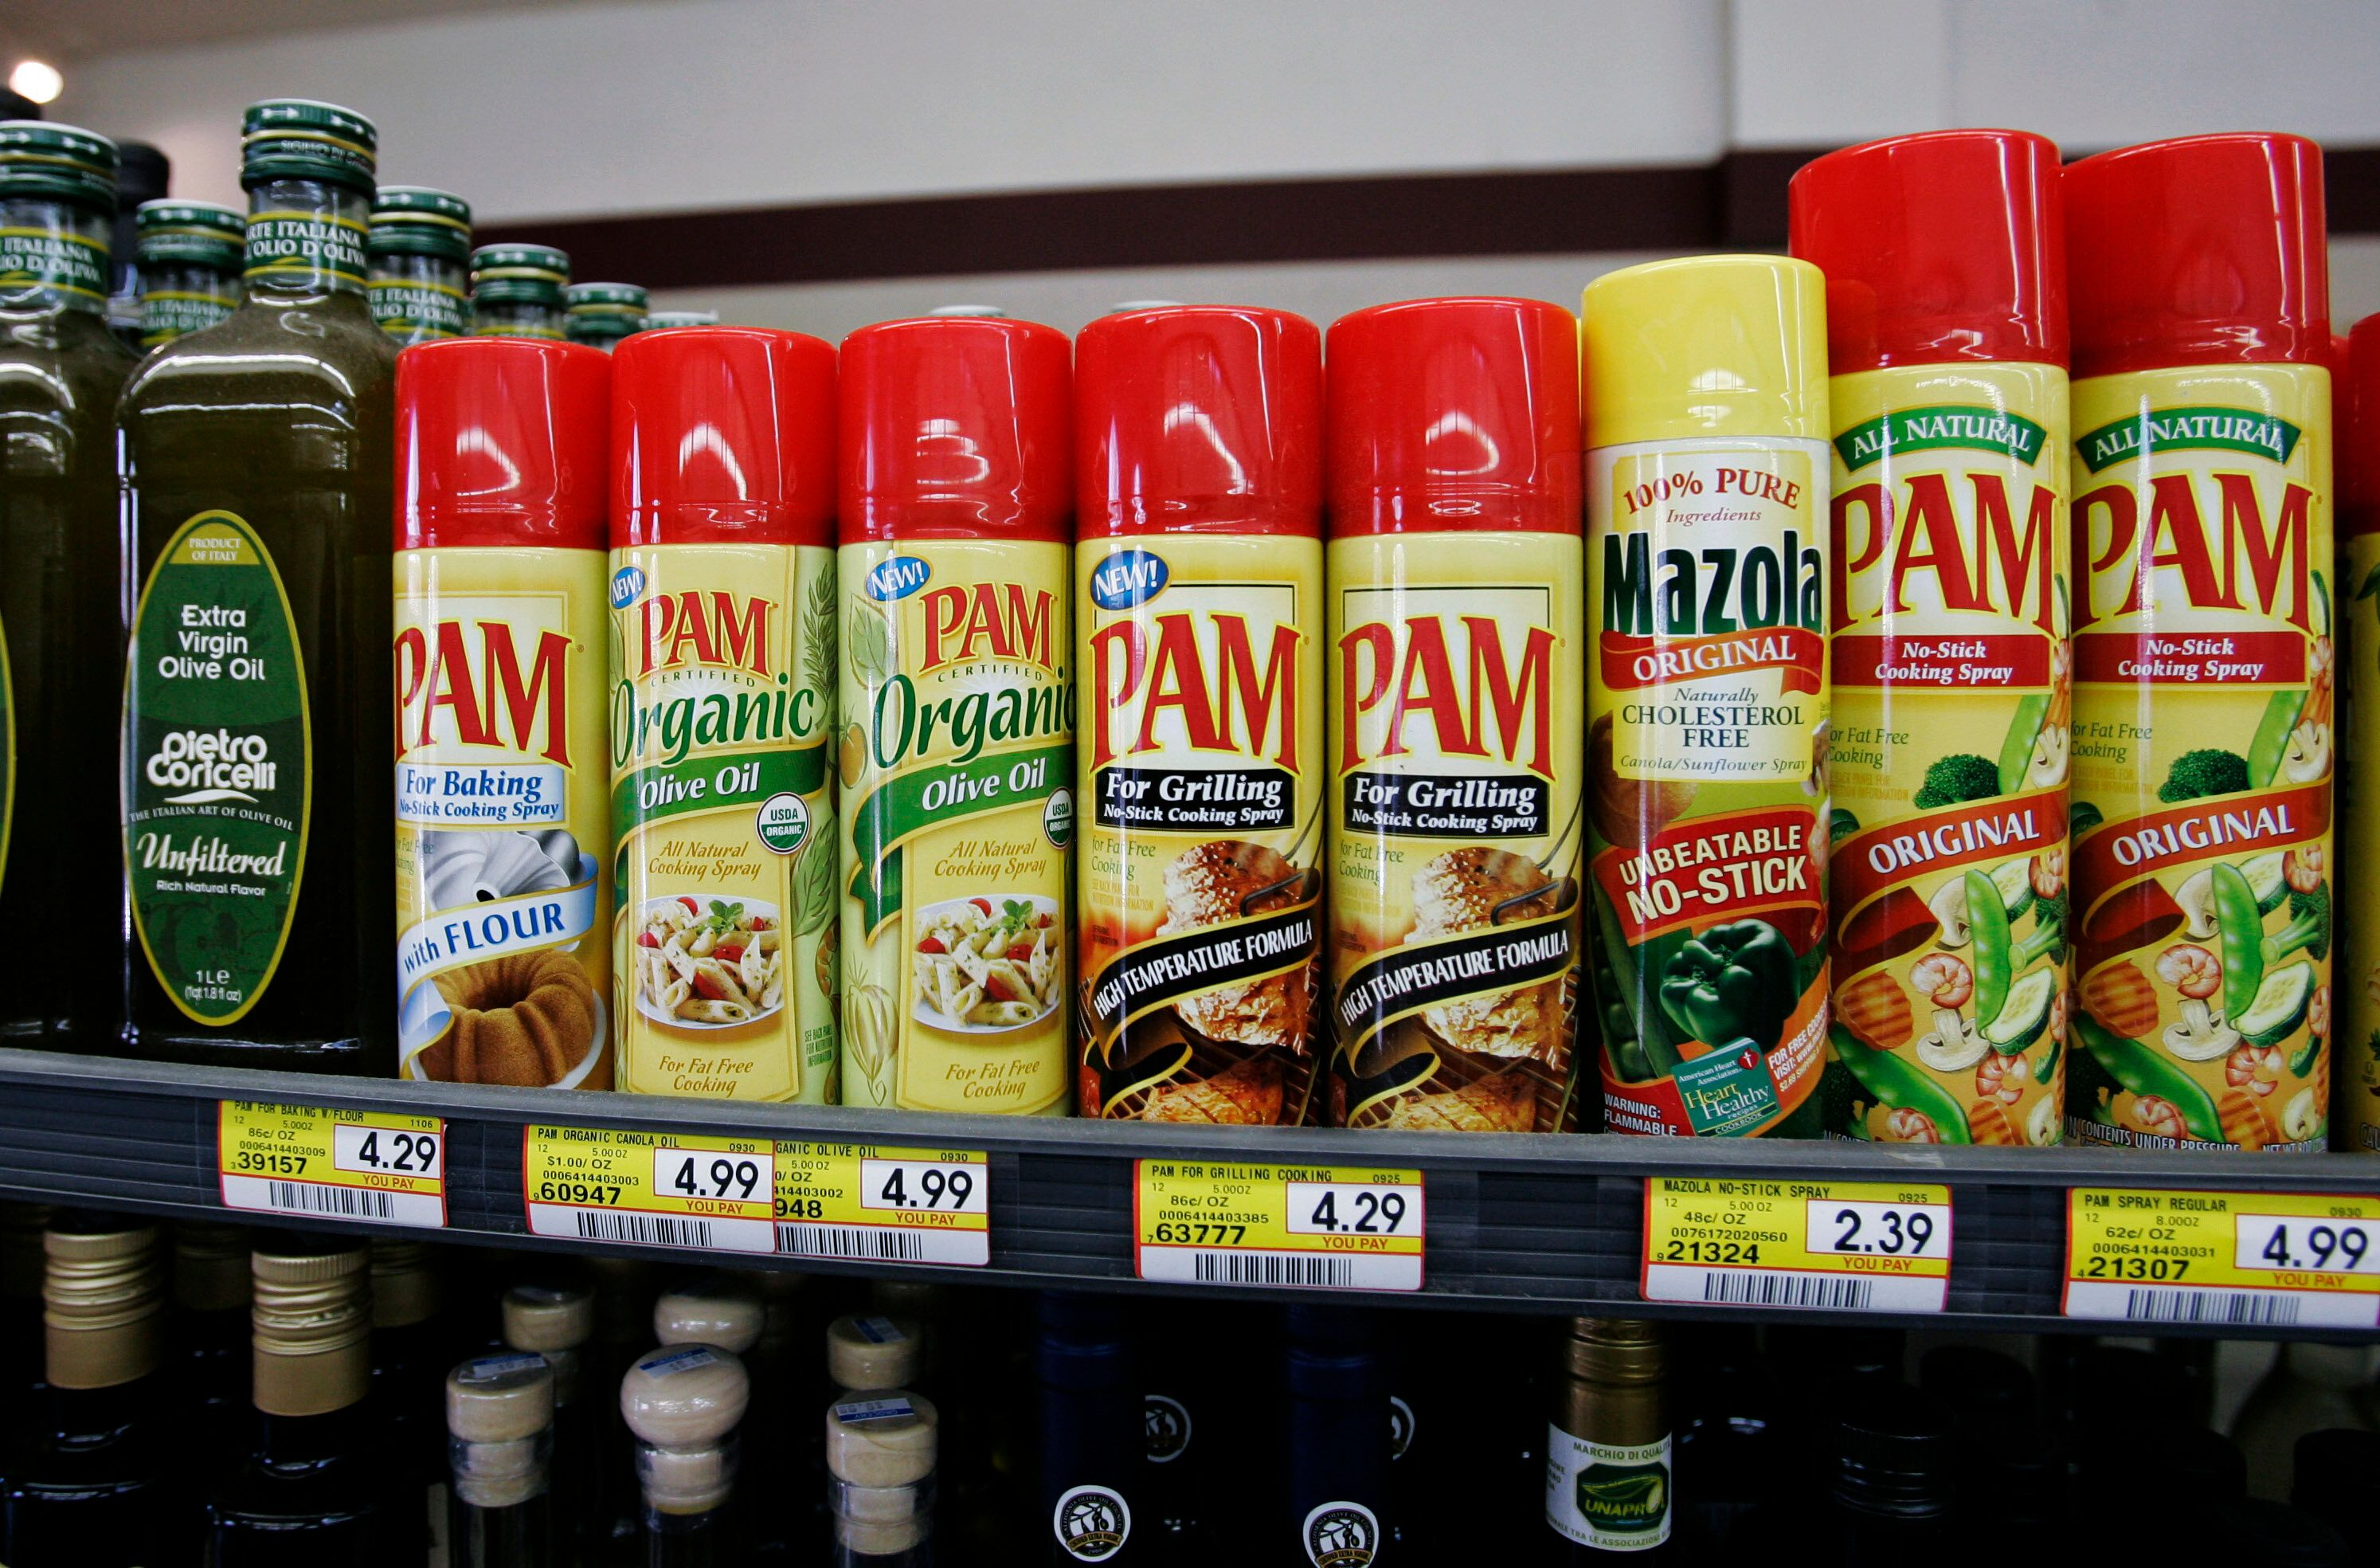 PAM cooking spray, made by ConAgra Foods, is on display at a market in Palo Alto, Calif., Wednesday, Dec. 20, 2006. Packaged-food maker ConAgra Foods Inc. said fiscal second-quarter income grew 44 percent as the company sold off business units and improved margins. (AP Photo/Paul Sakuma)